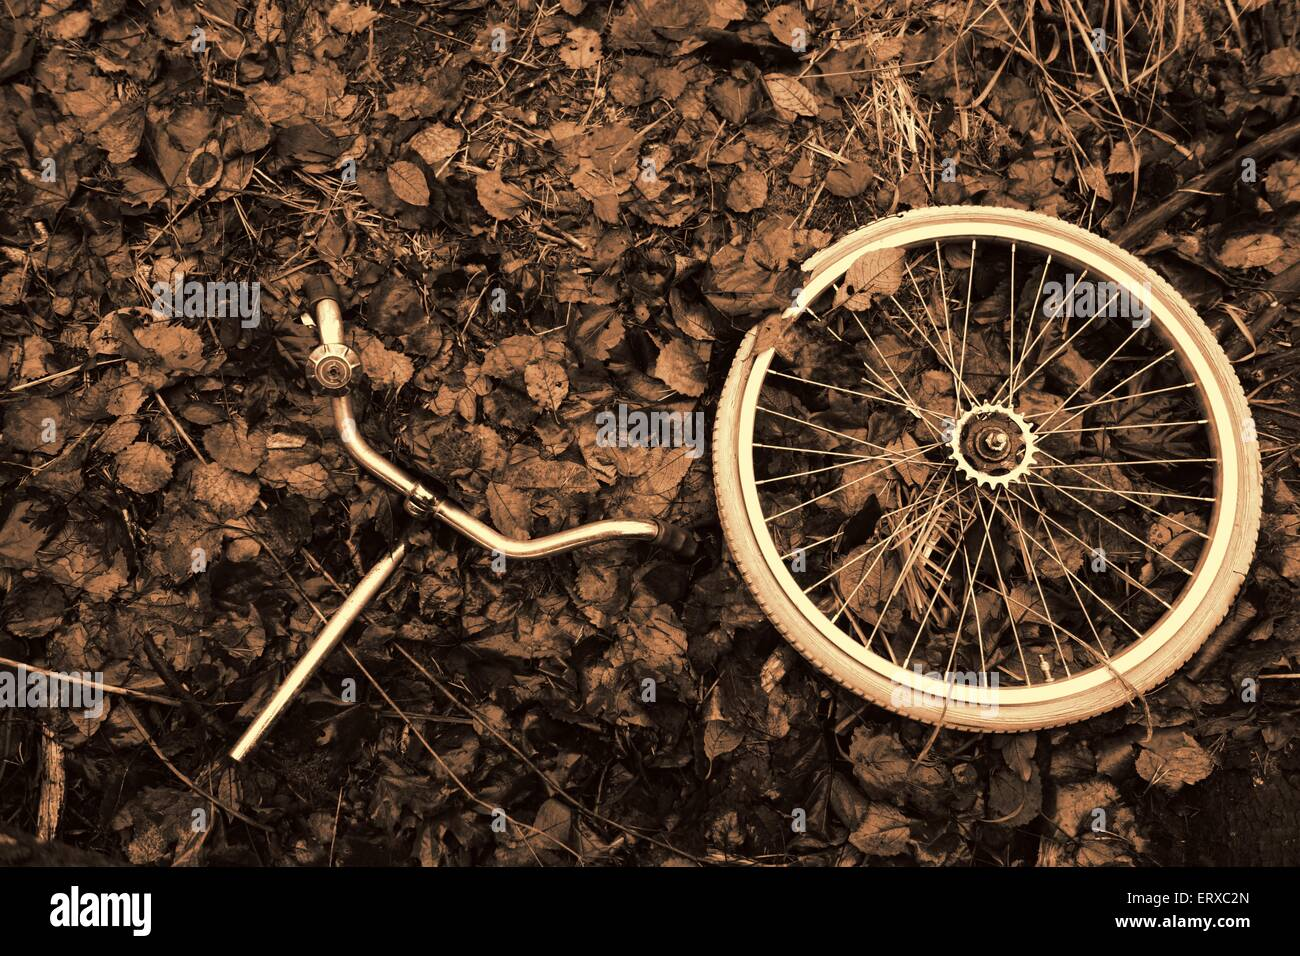 Bicycle wheel and handlebars in Autumn leaves - Stock Image